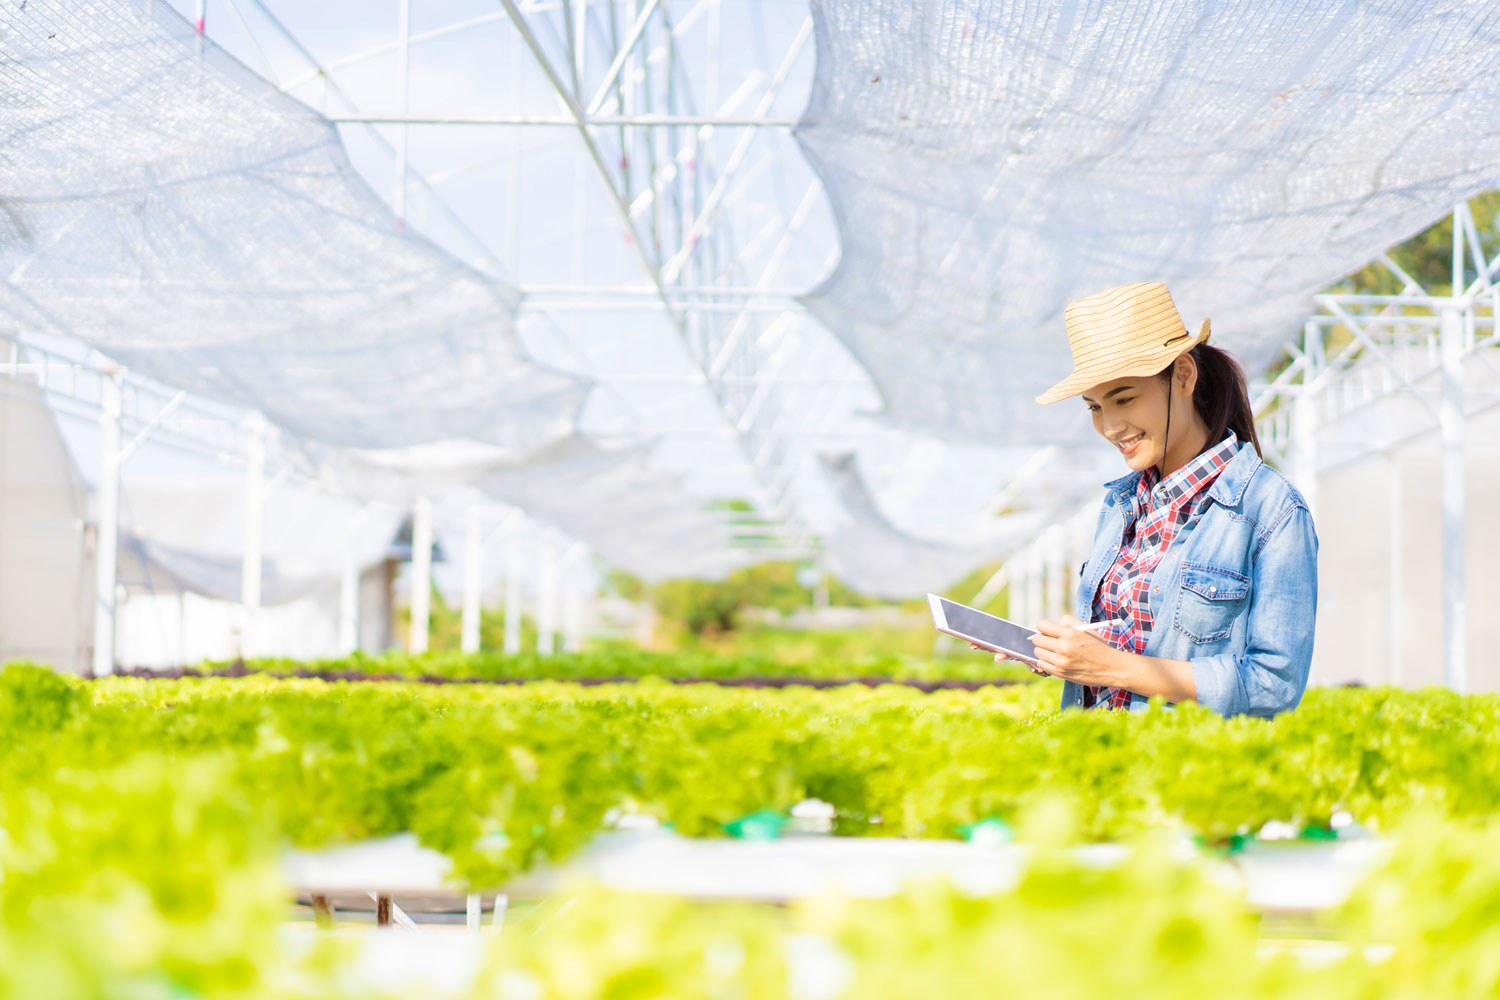 Farmers are recording data on tablets at Hydroponic vegetables salad farm.